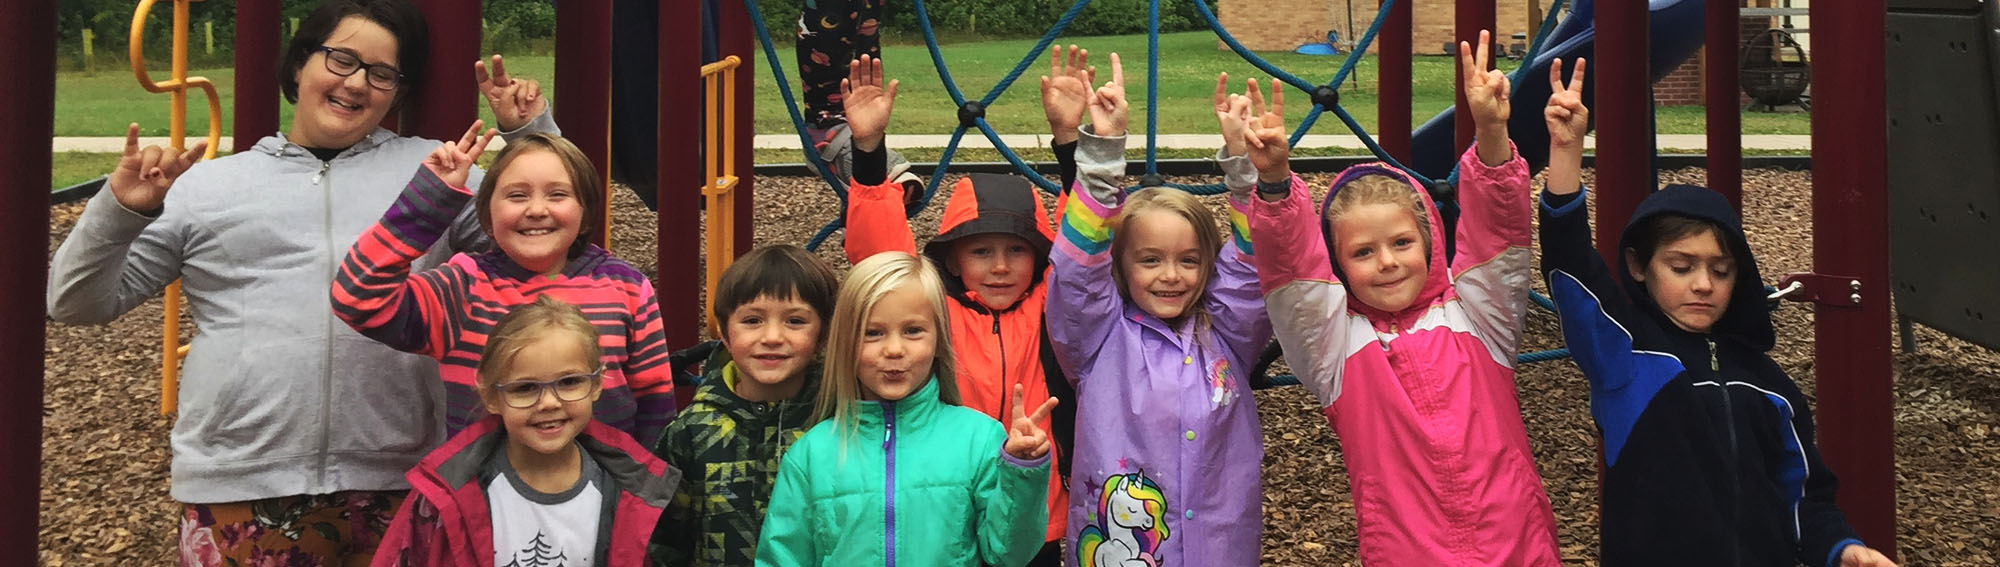 Group of happy Birch Grove students on the playground